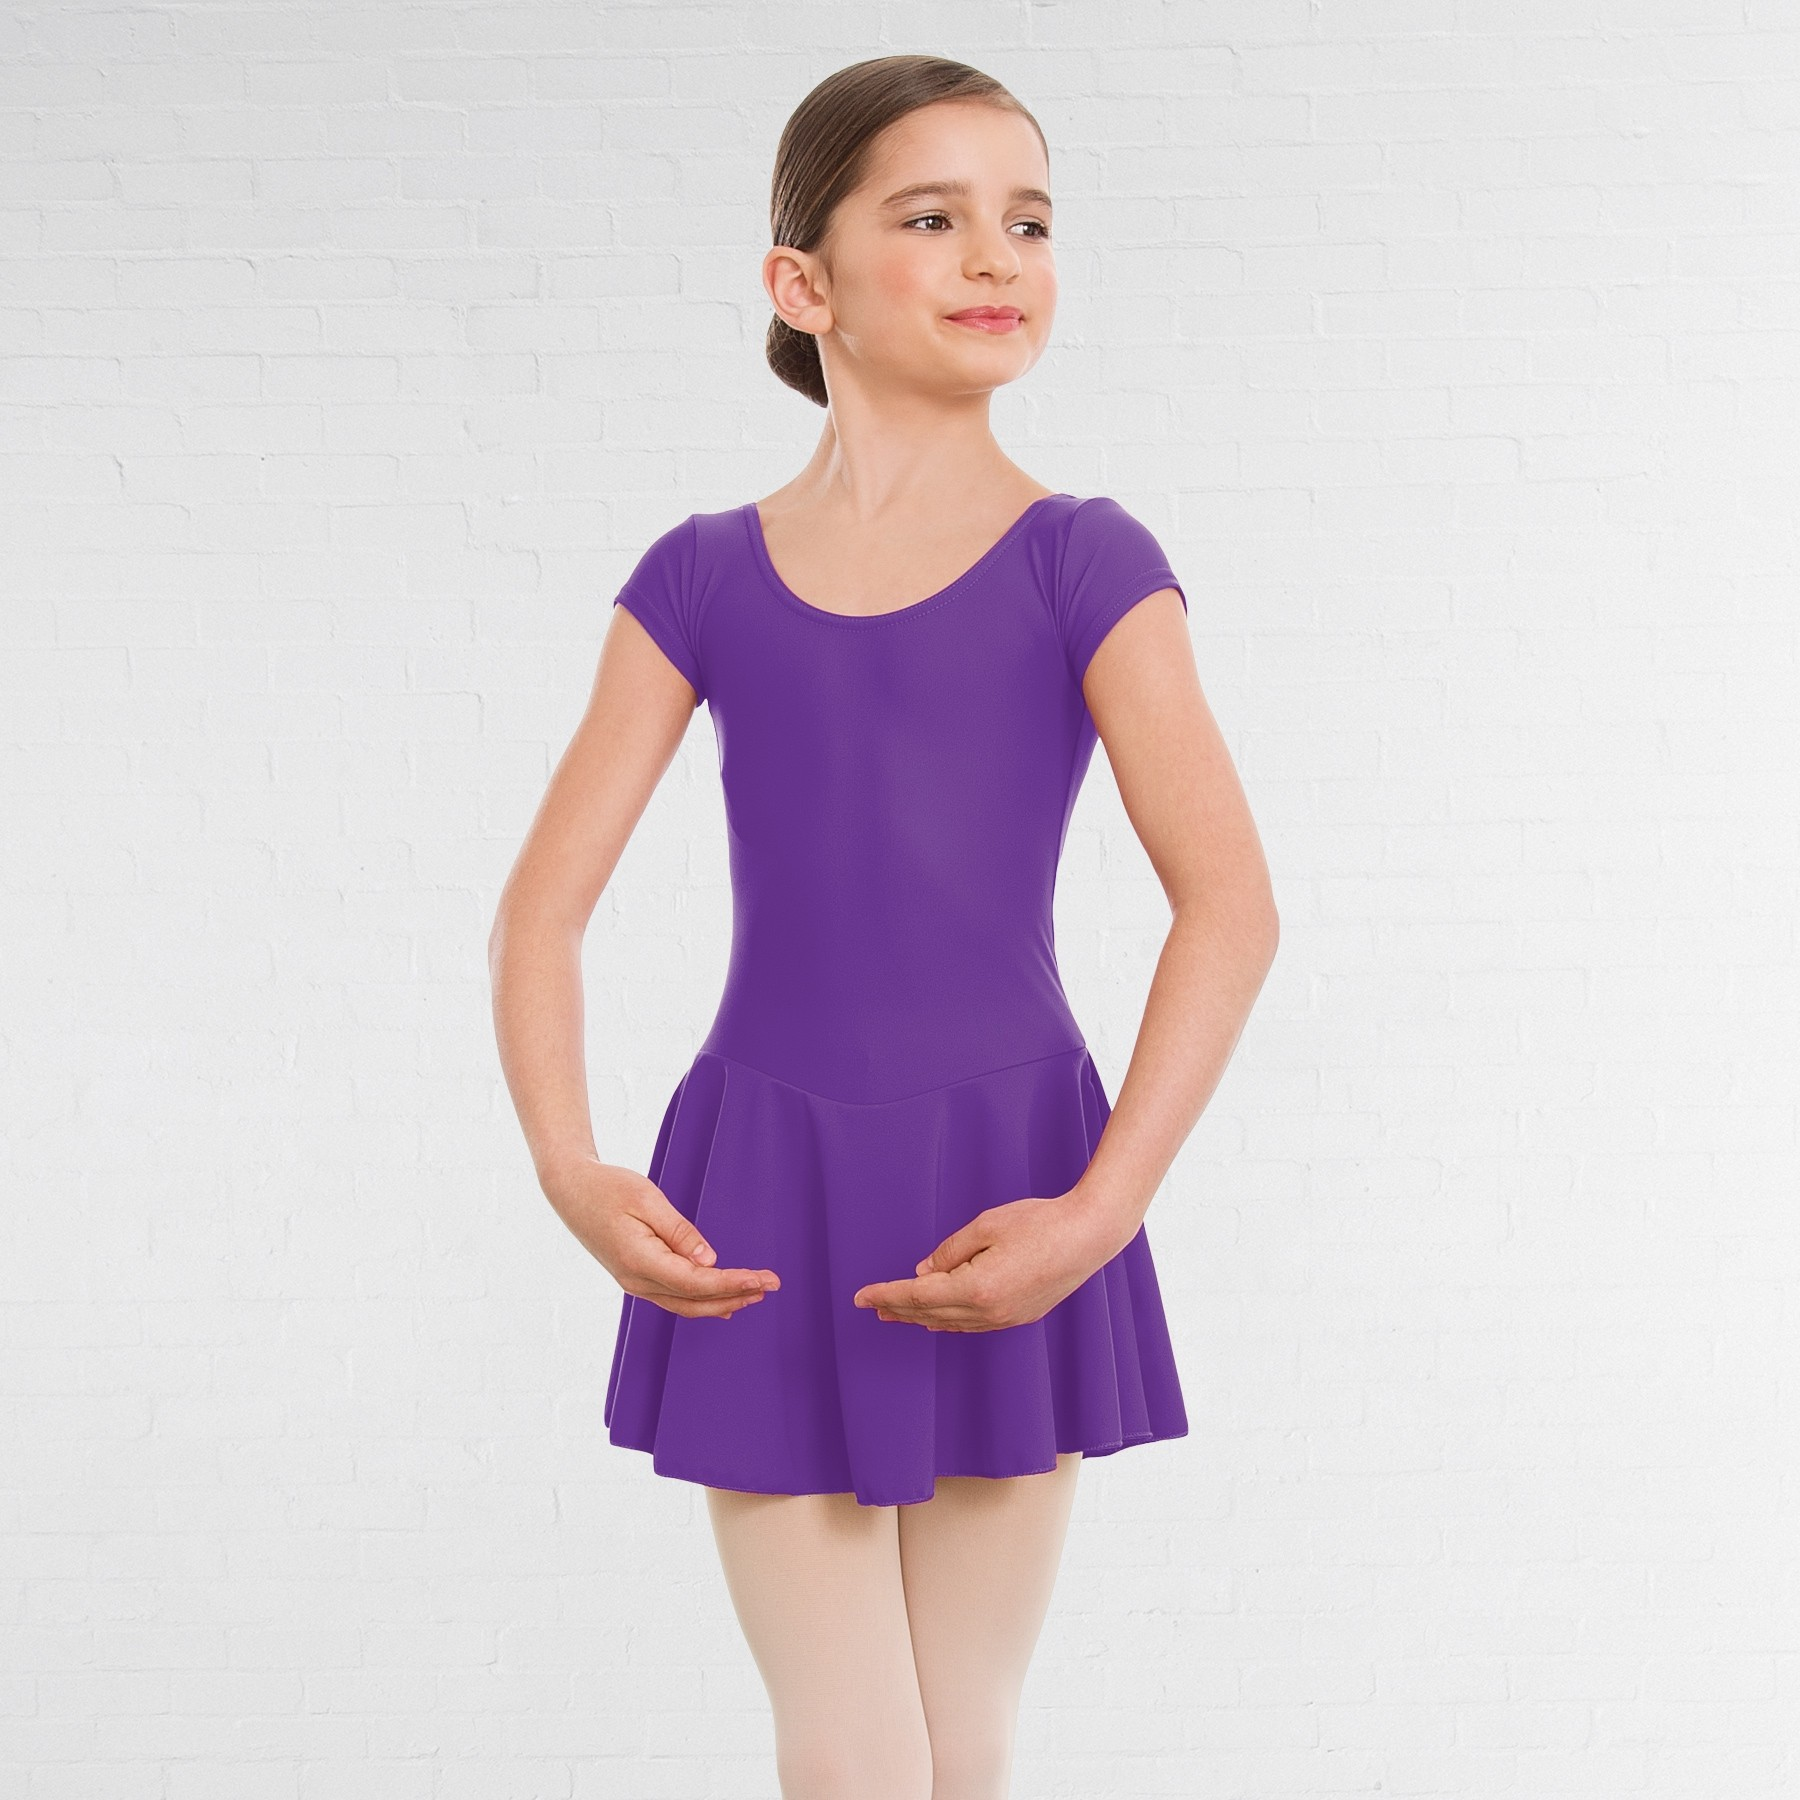 1st Position Maddy Skirted Cap Sleeve Leotard (Matt Nylon) (Violet)